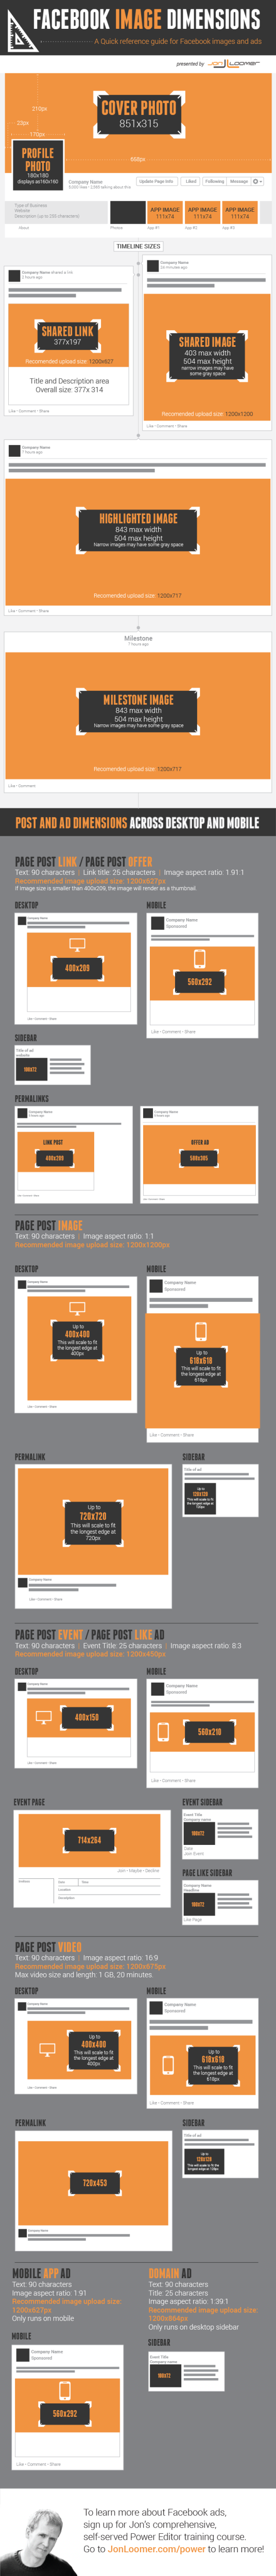 Infographic: Facebook Image Dimensions